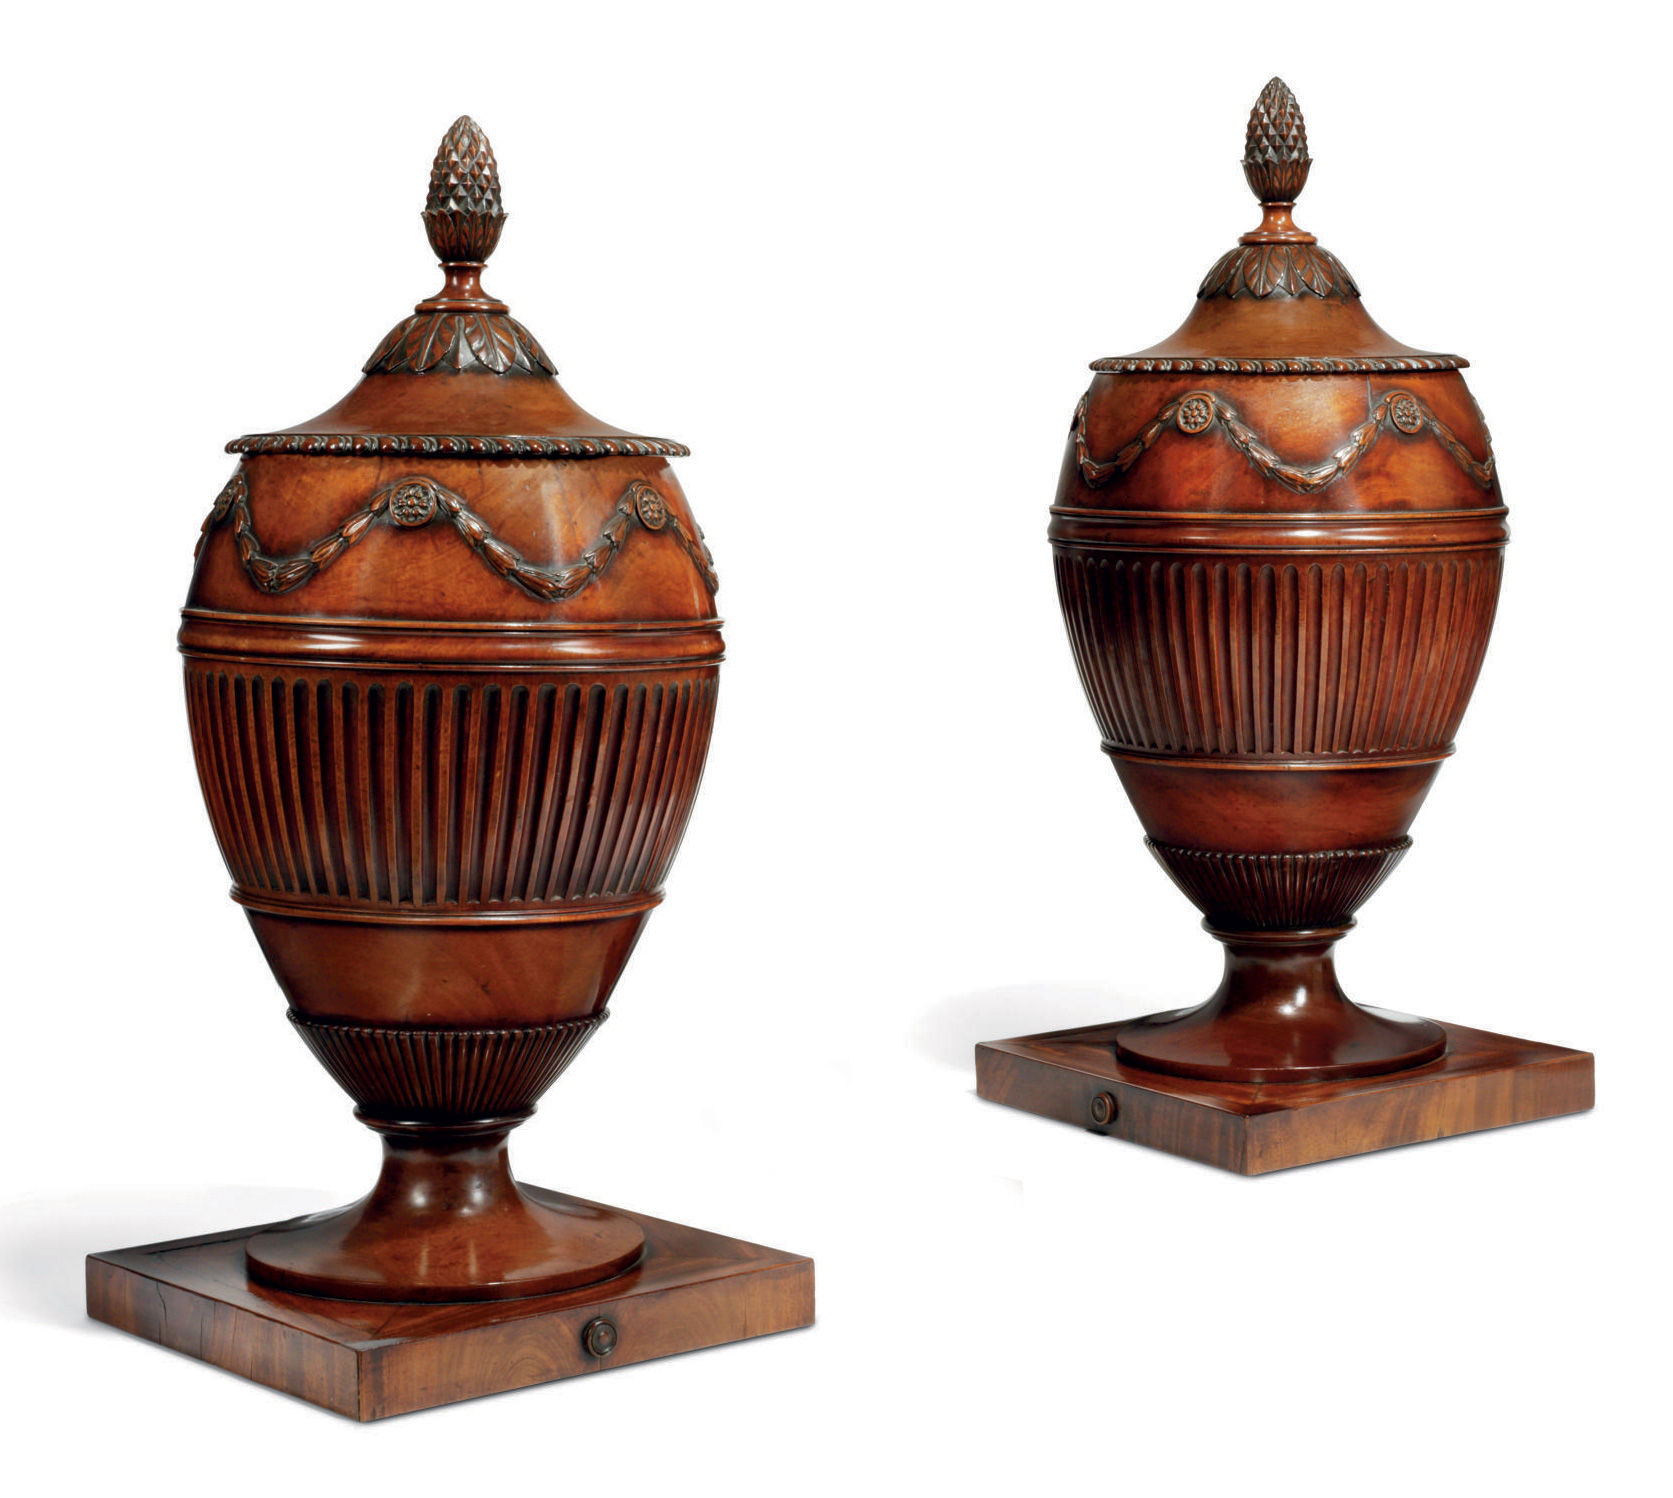 A PAIR OF LATE GEORGE III MAHOGANY WATER URNS